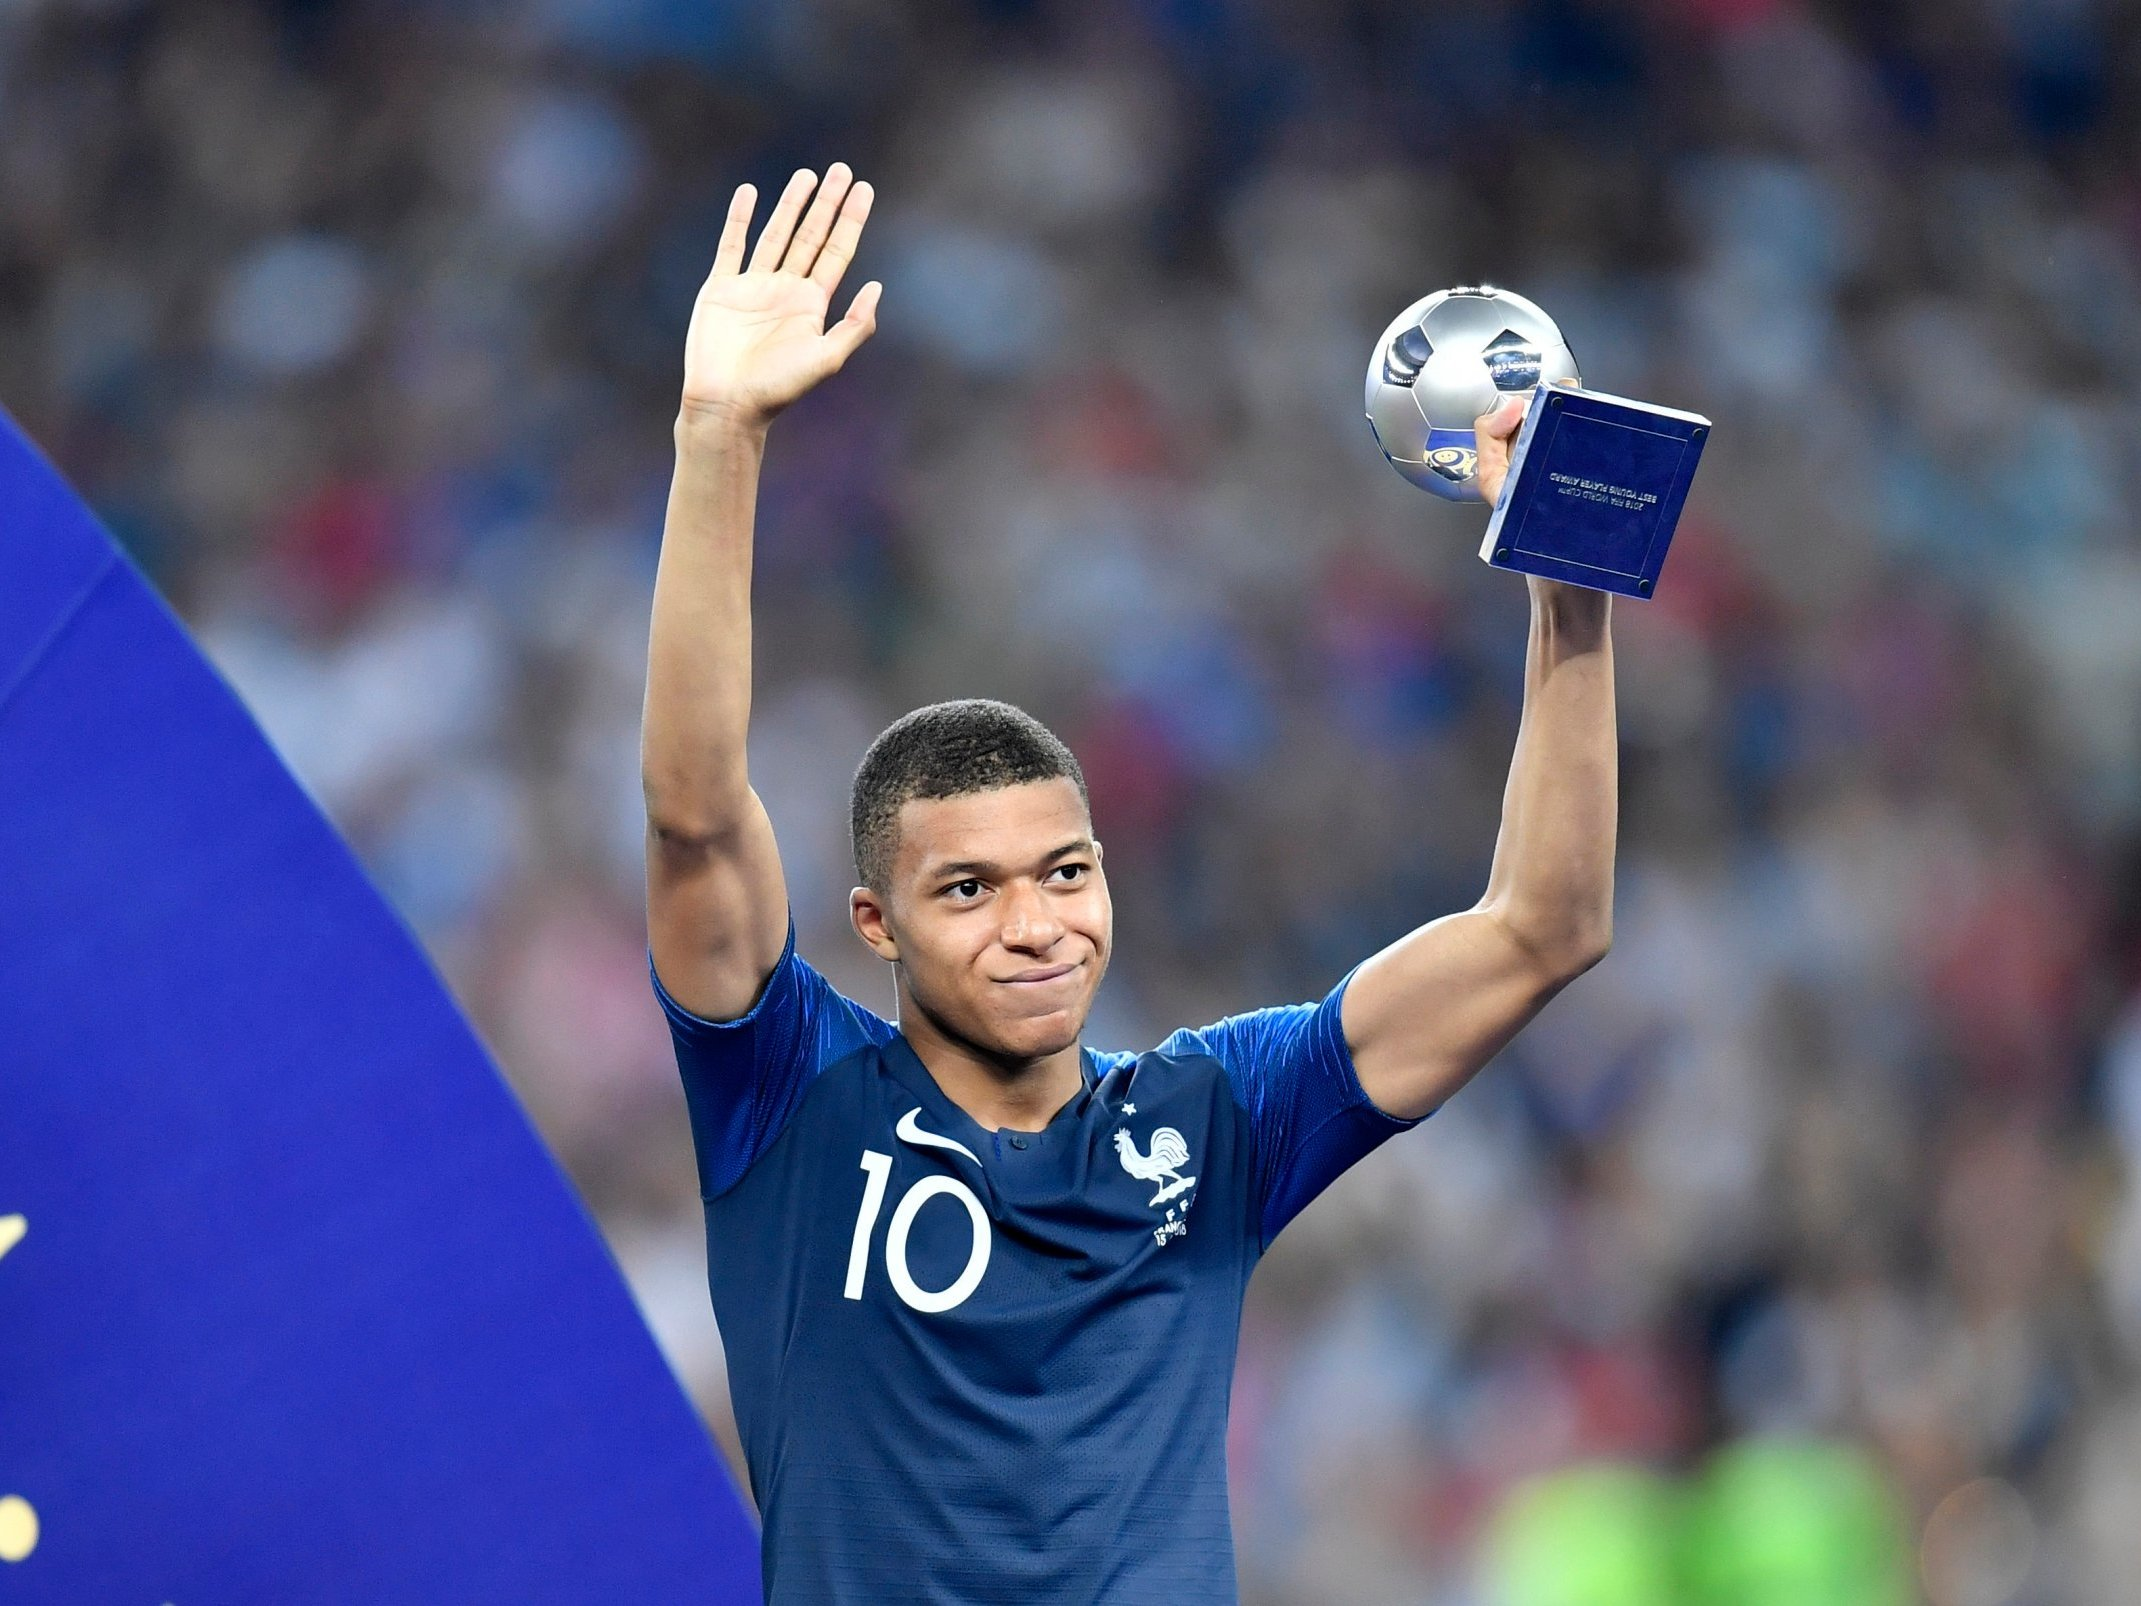 Mbappe won the FIFA Young Player Award.